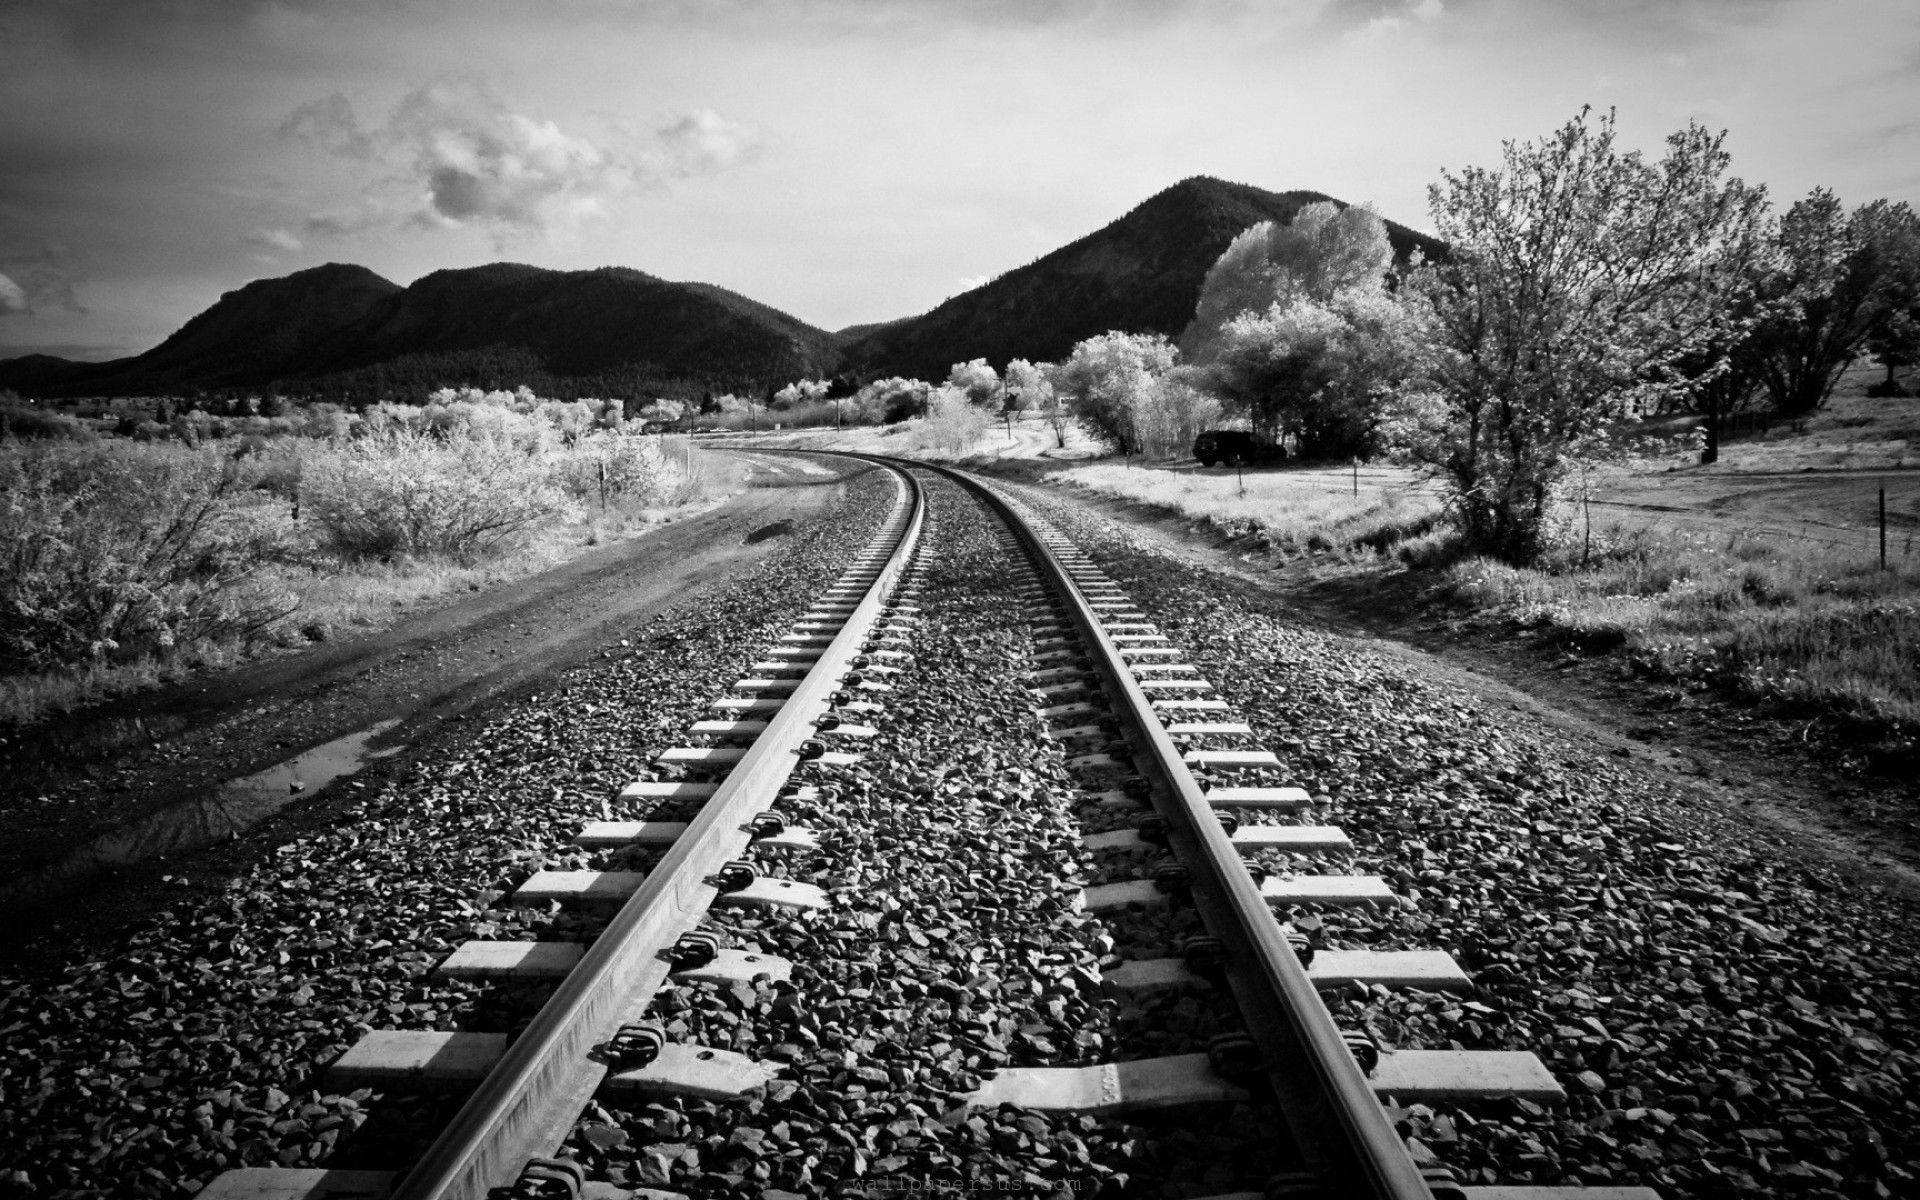 black and white pictures | black or white compliments | pinterest